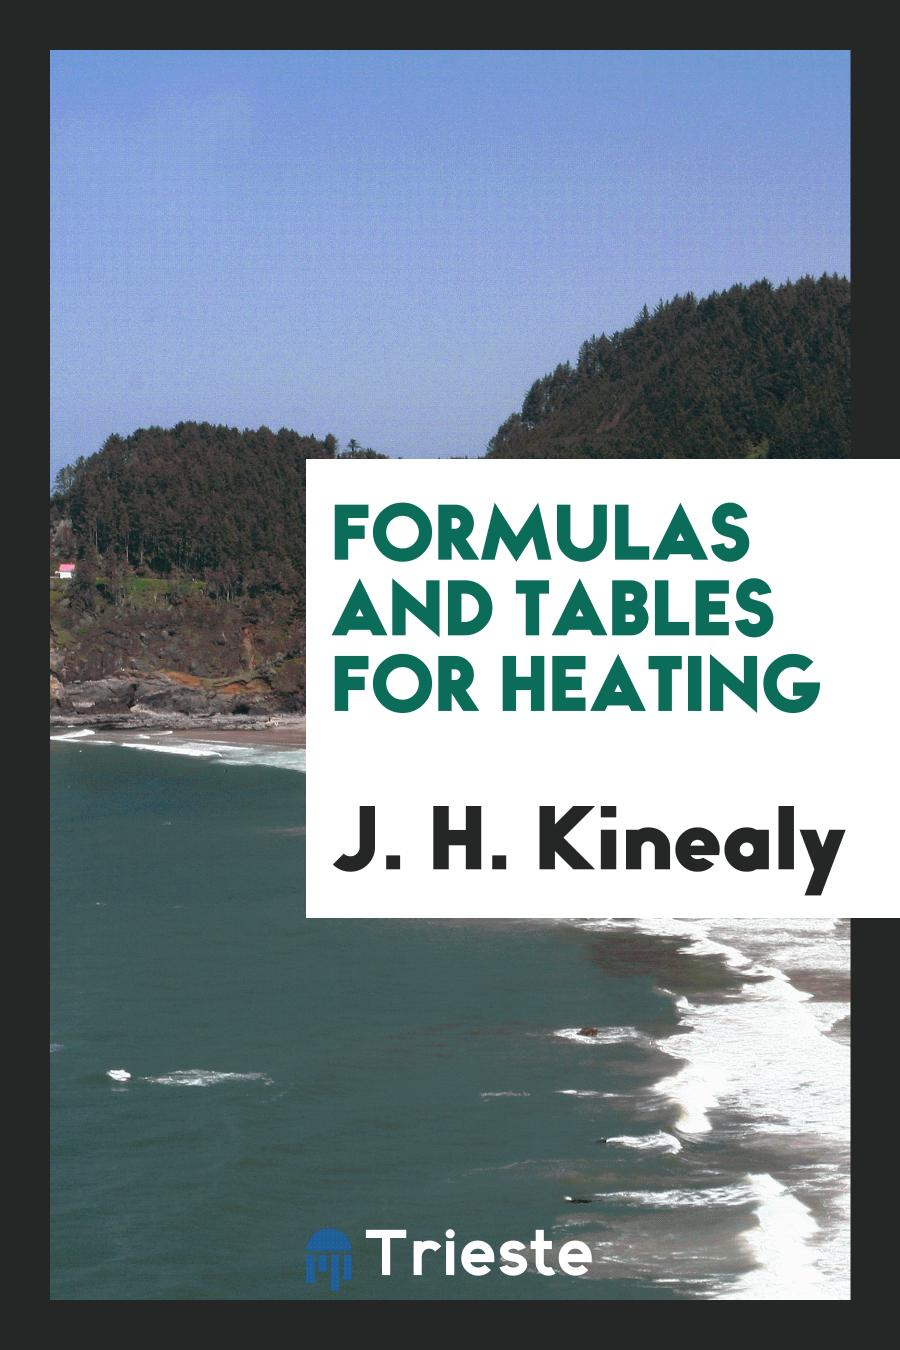 Formulas and Tables for Heating